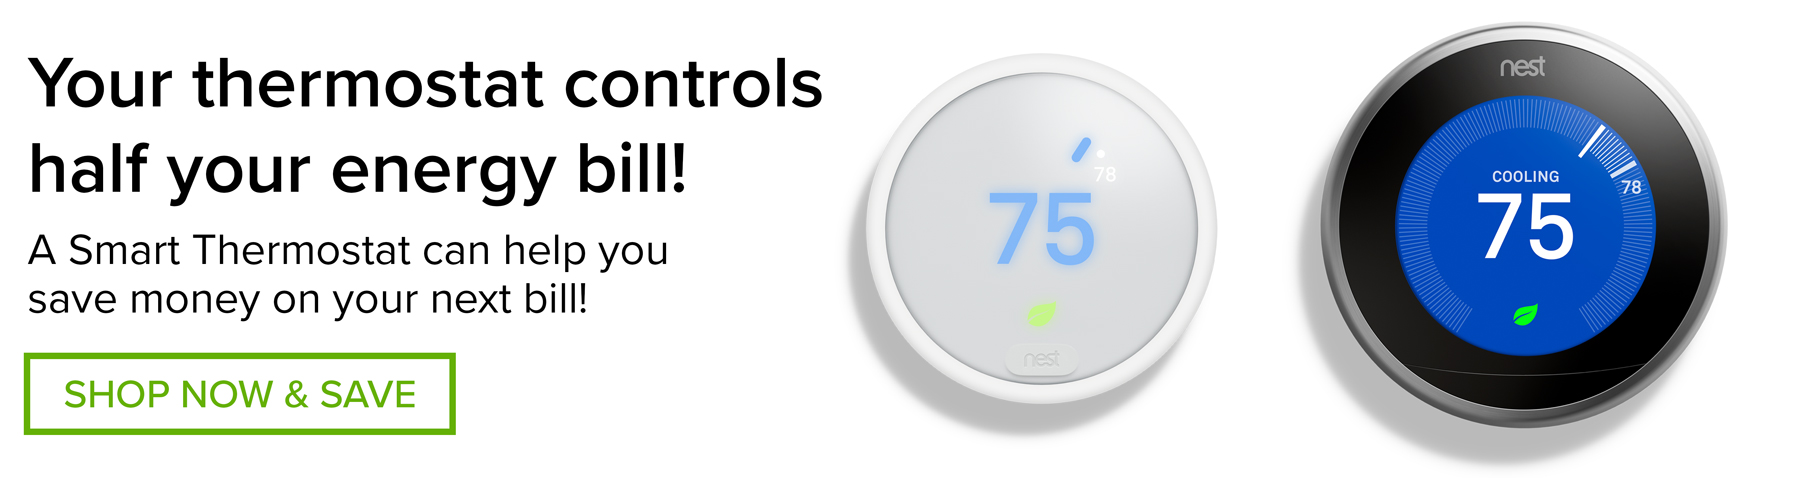 Instant Savings on Smart Thermostats